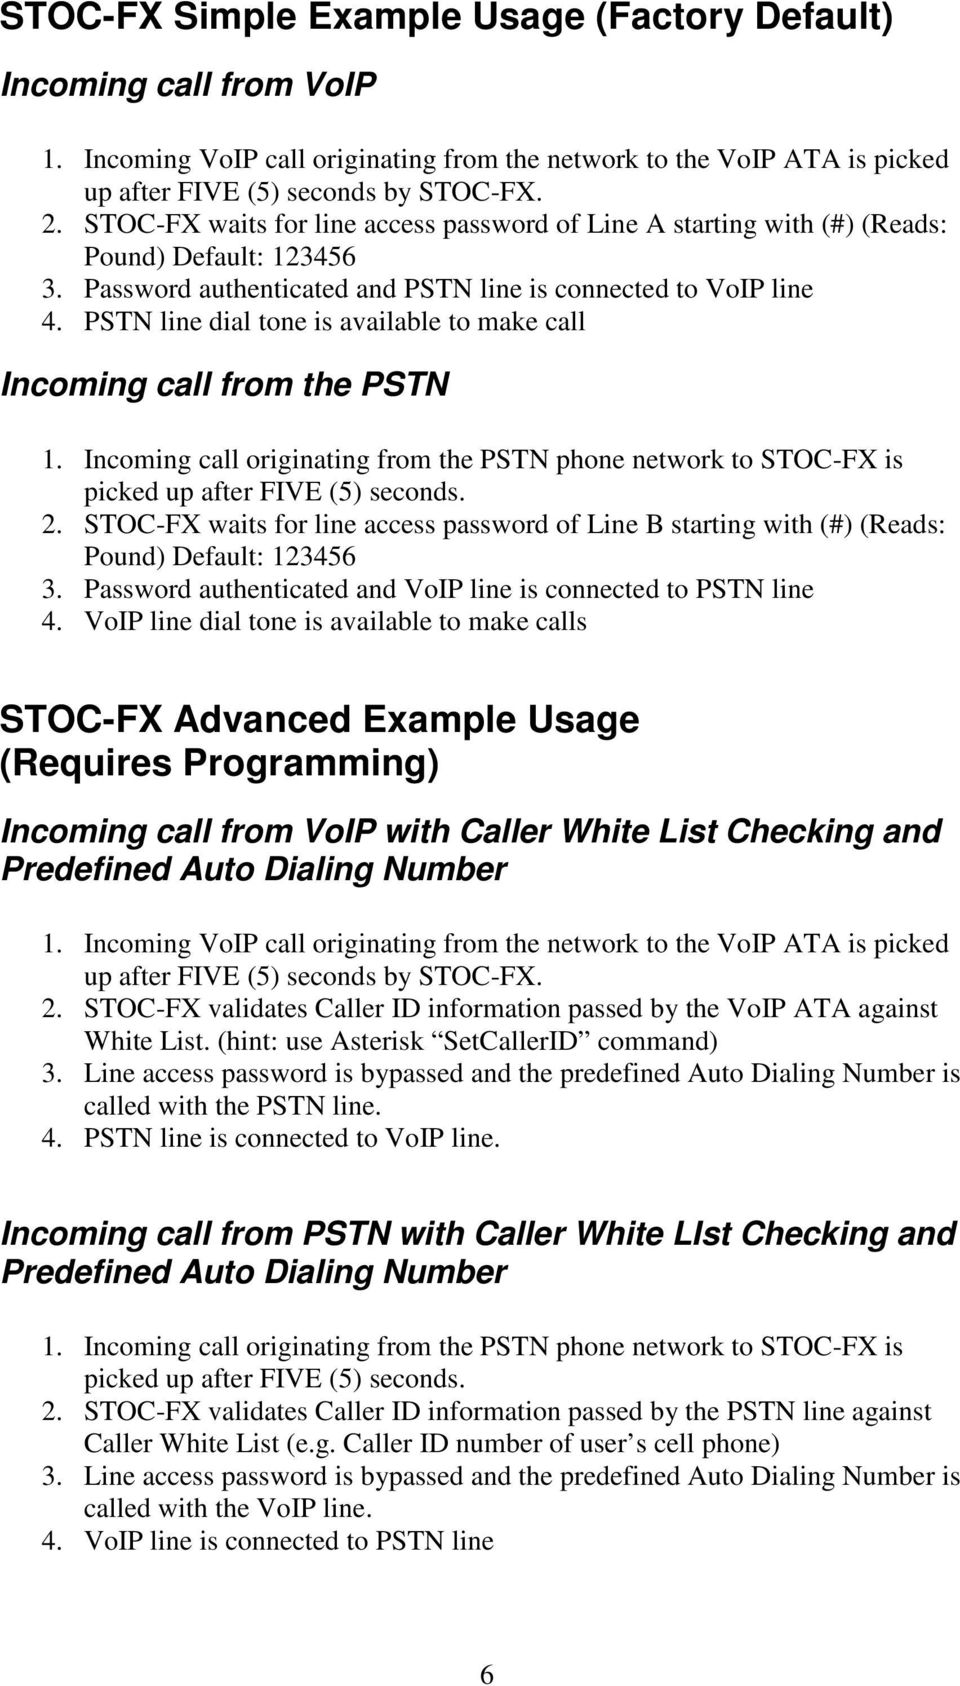 PSTN line dial tone is available to make call Incoming call from the PSTN 1. Incoming call originating from the PSTN phone network to STOC-FX is picked up after FIVE (5) seconds. 2.